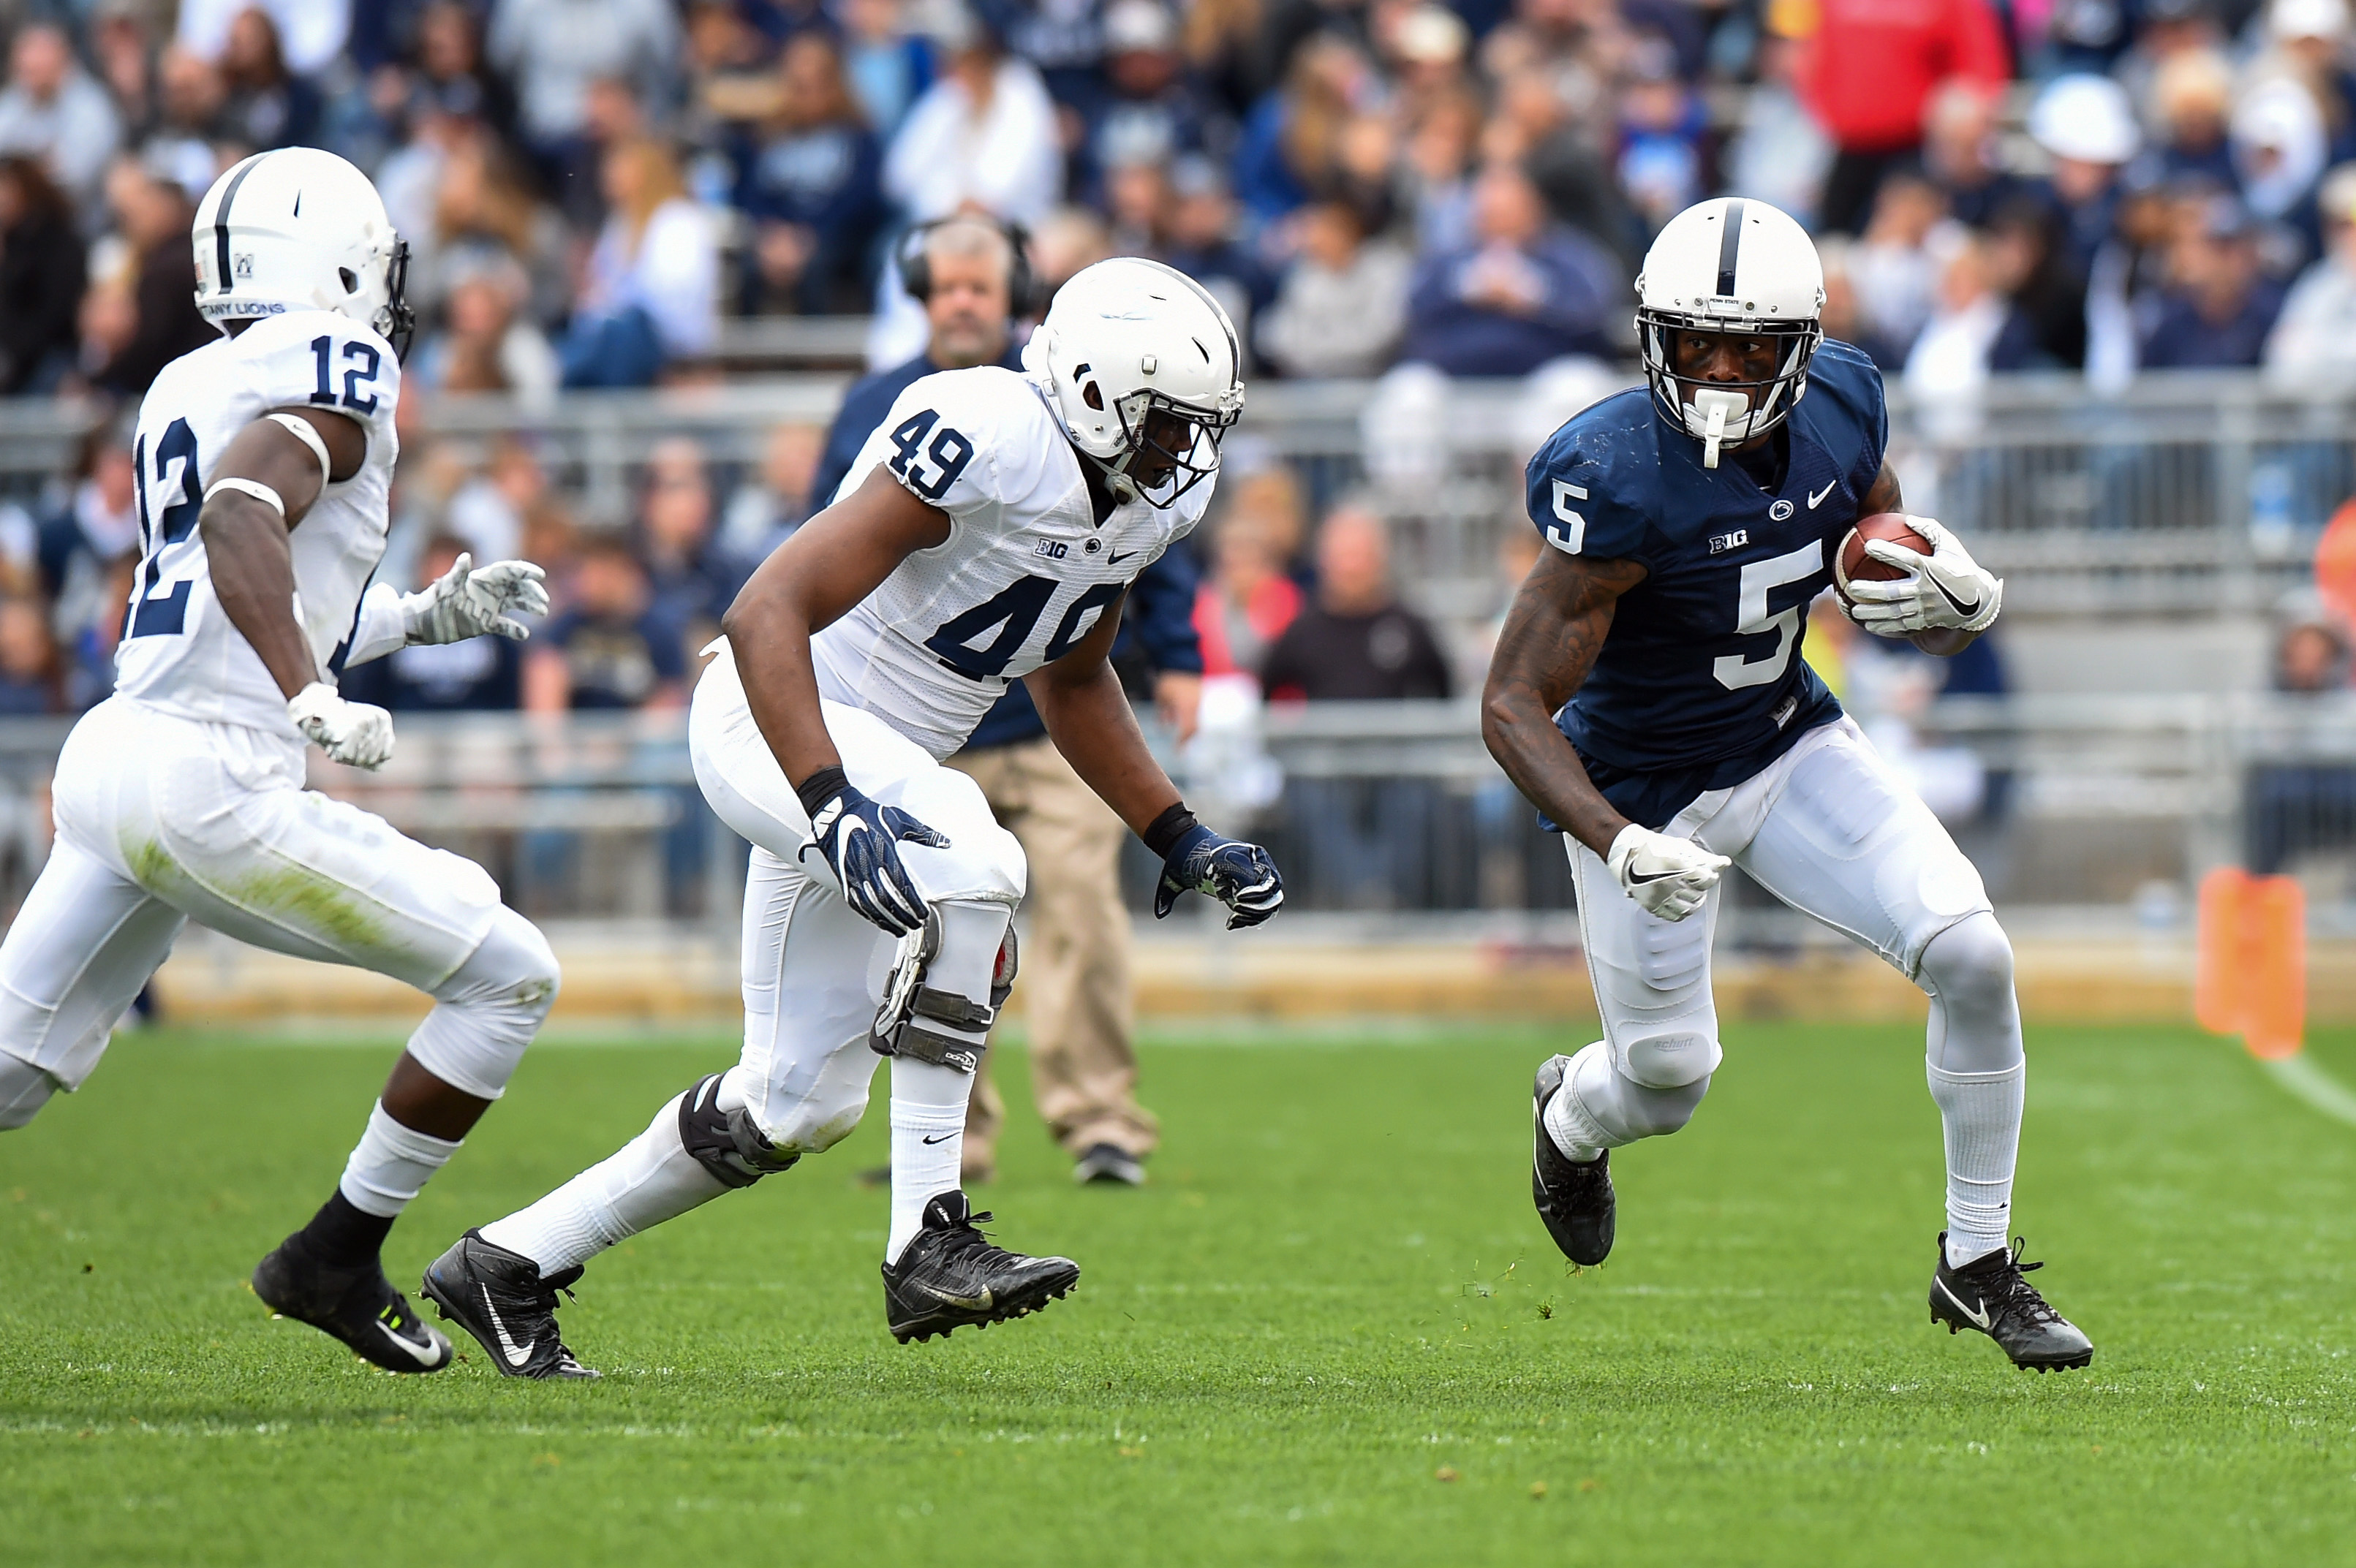 penn state football - photo #26